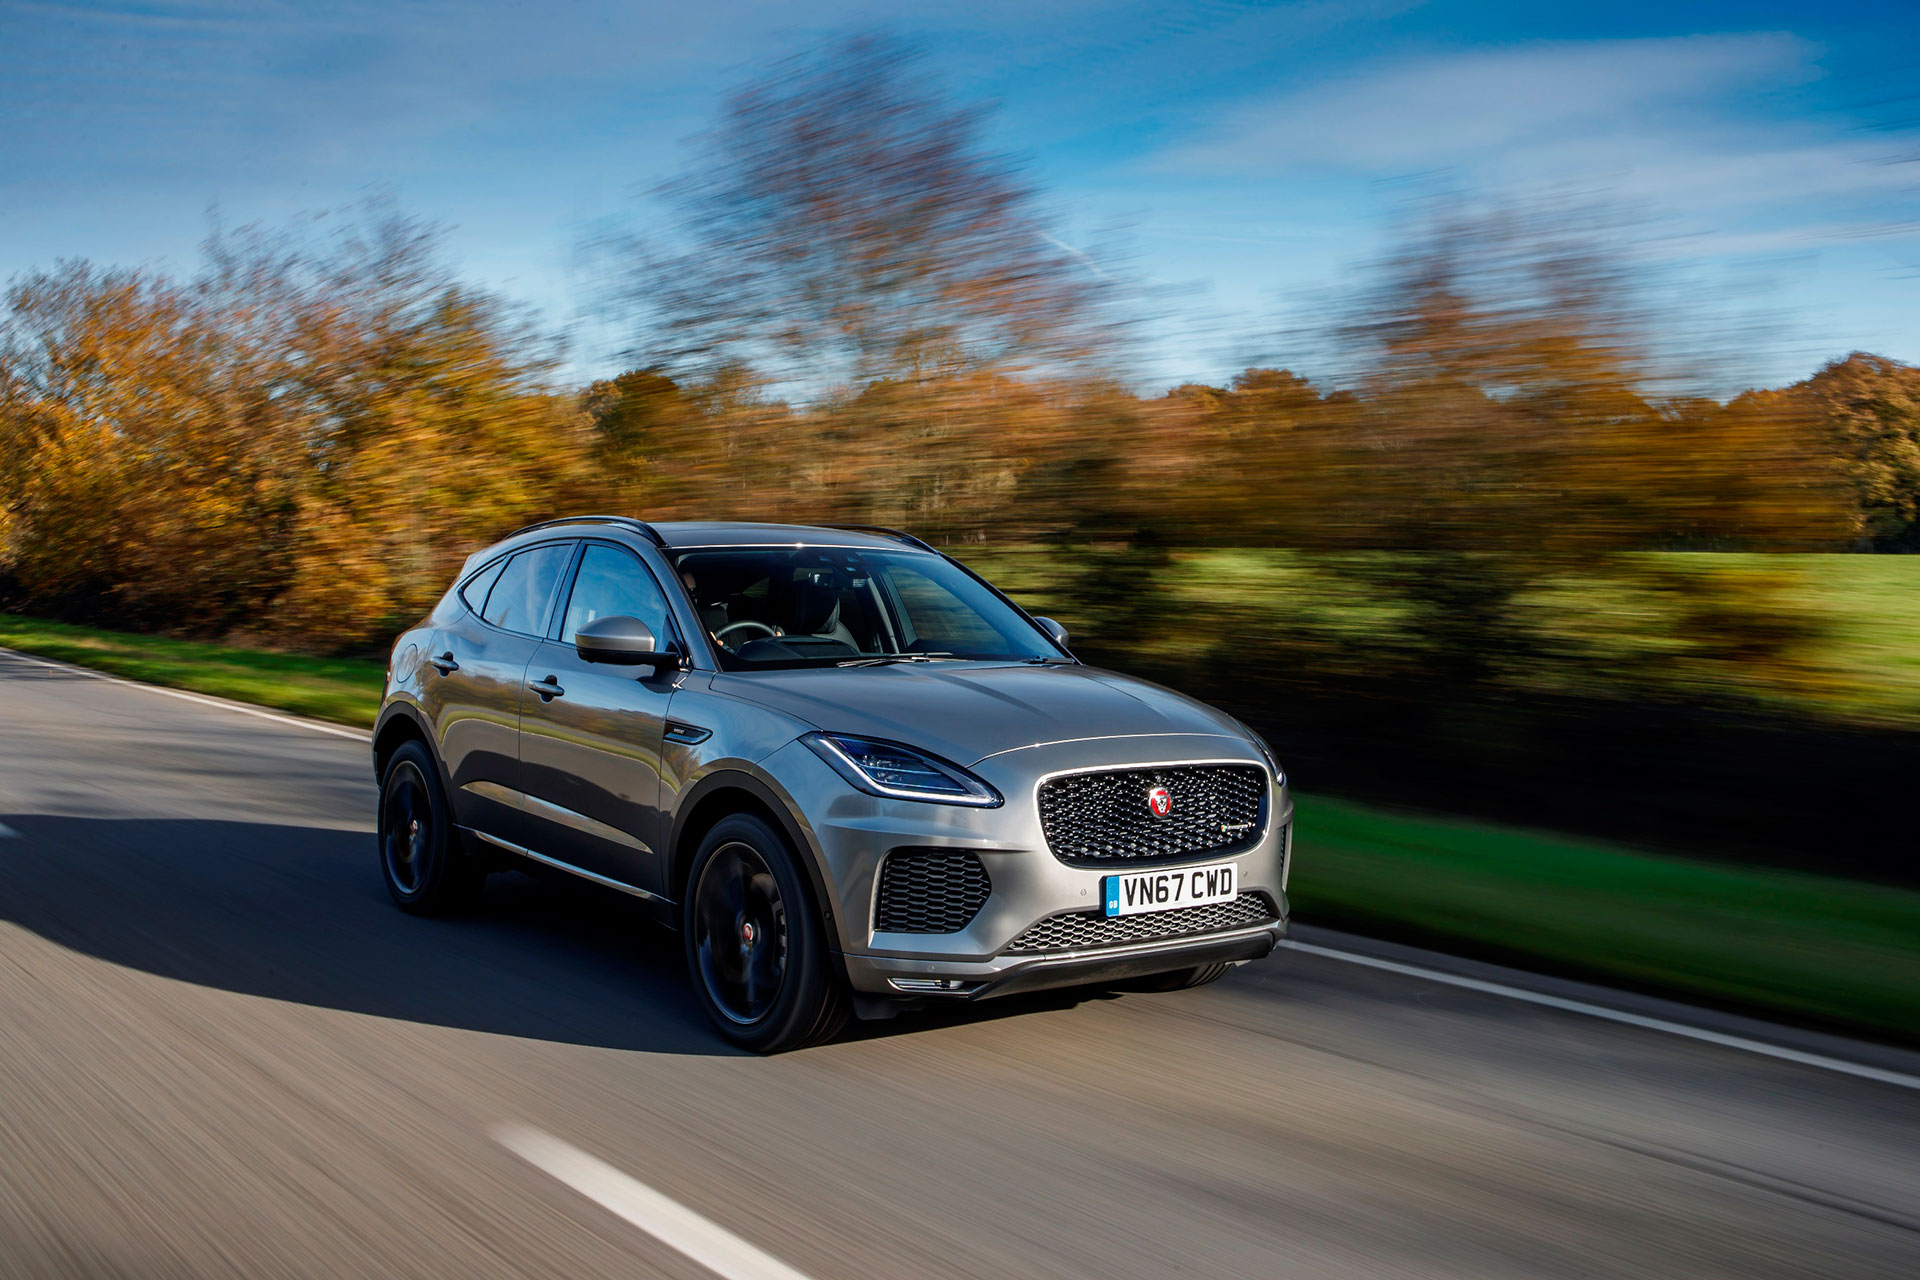 JAGUAR-LAND-ROVER-INGENIUM-PETROL-ENGINE-NAMED-TOP-10-IN-THE-WORLD-Arab-Motor-World